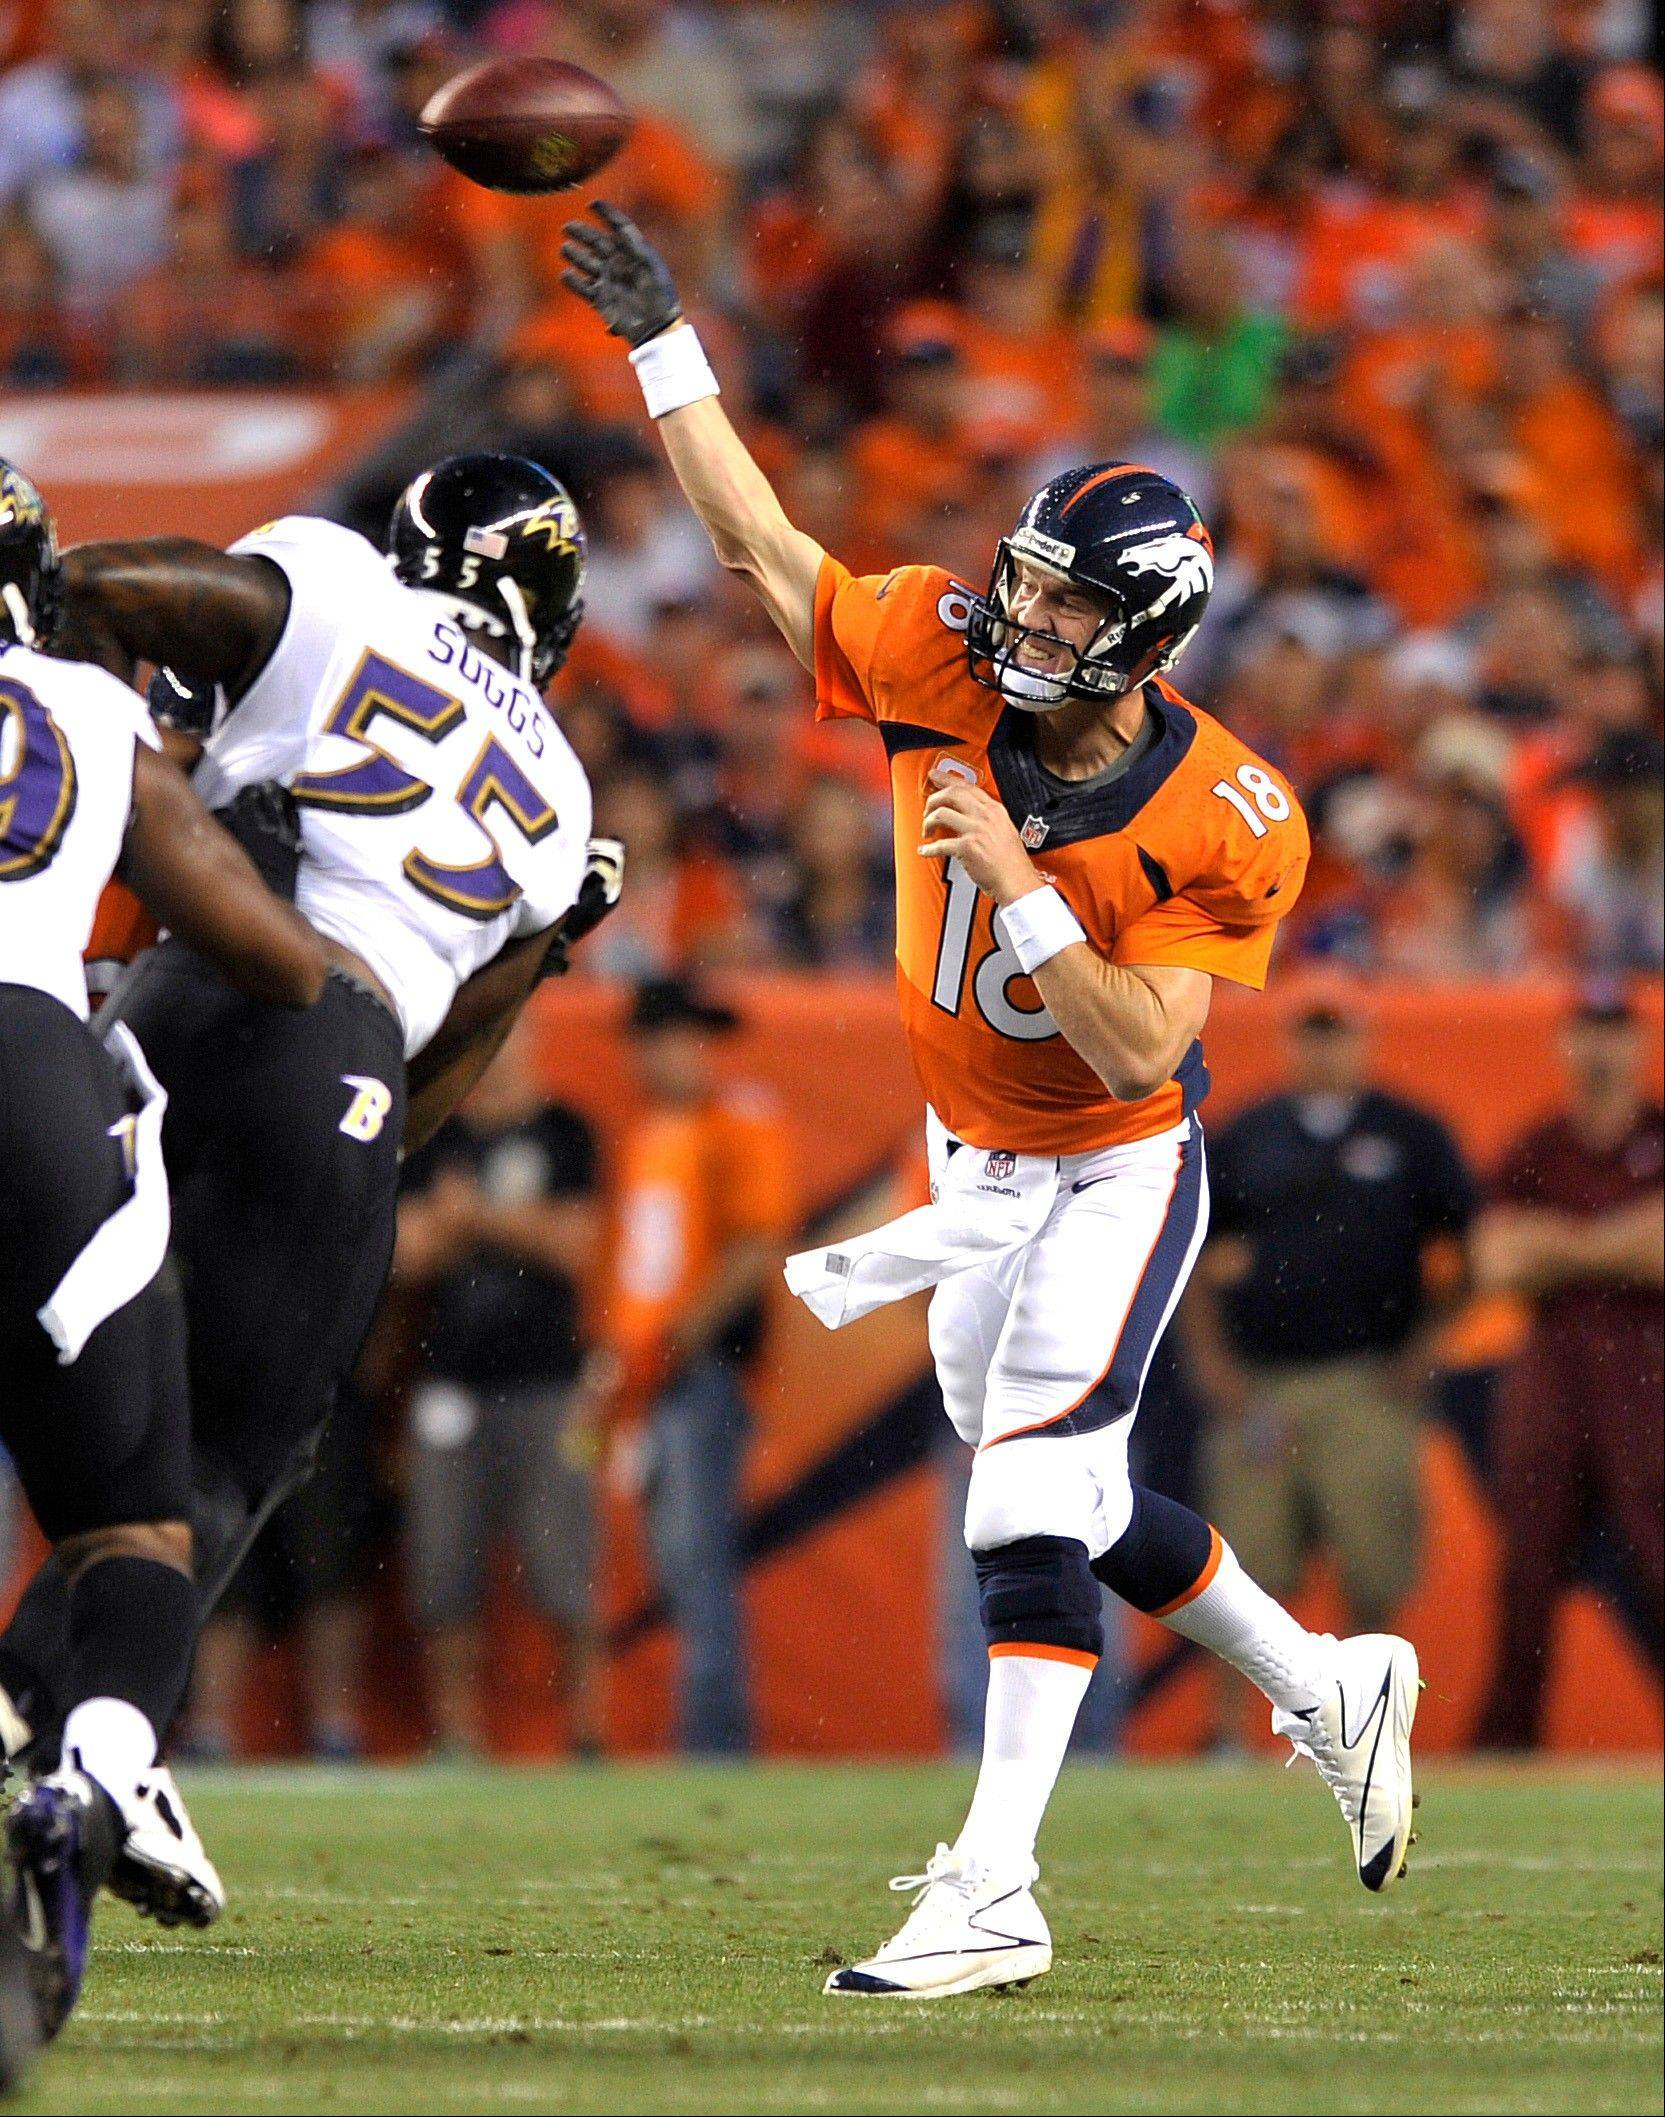 Denver Broncos quarterback Peyton Manning (18) throws under pressure from Baltimore Ravens outside linebacker Terrell Suggs (55) during the first half of an NFL football game, Thursday, Sept. 5, 2013, in Denver.